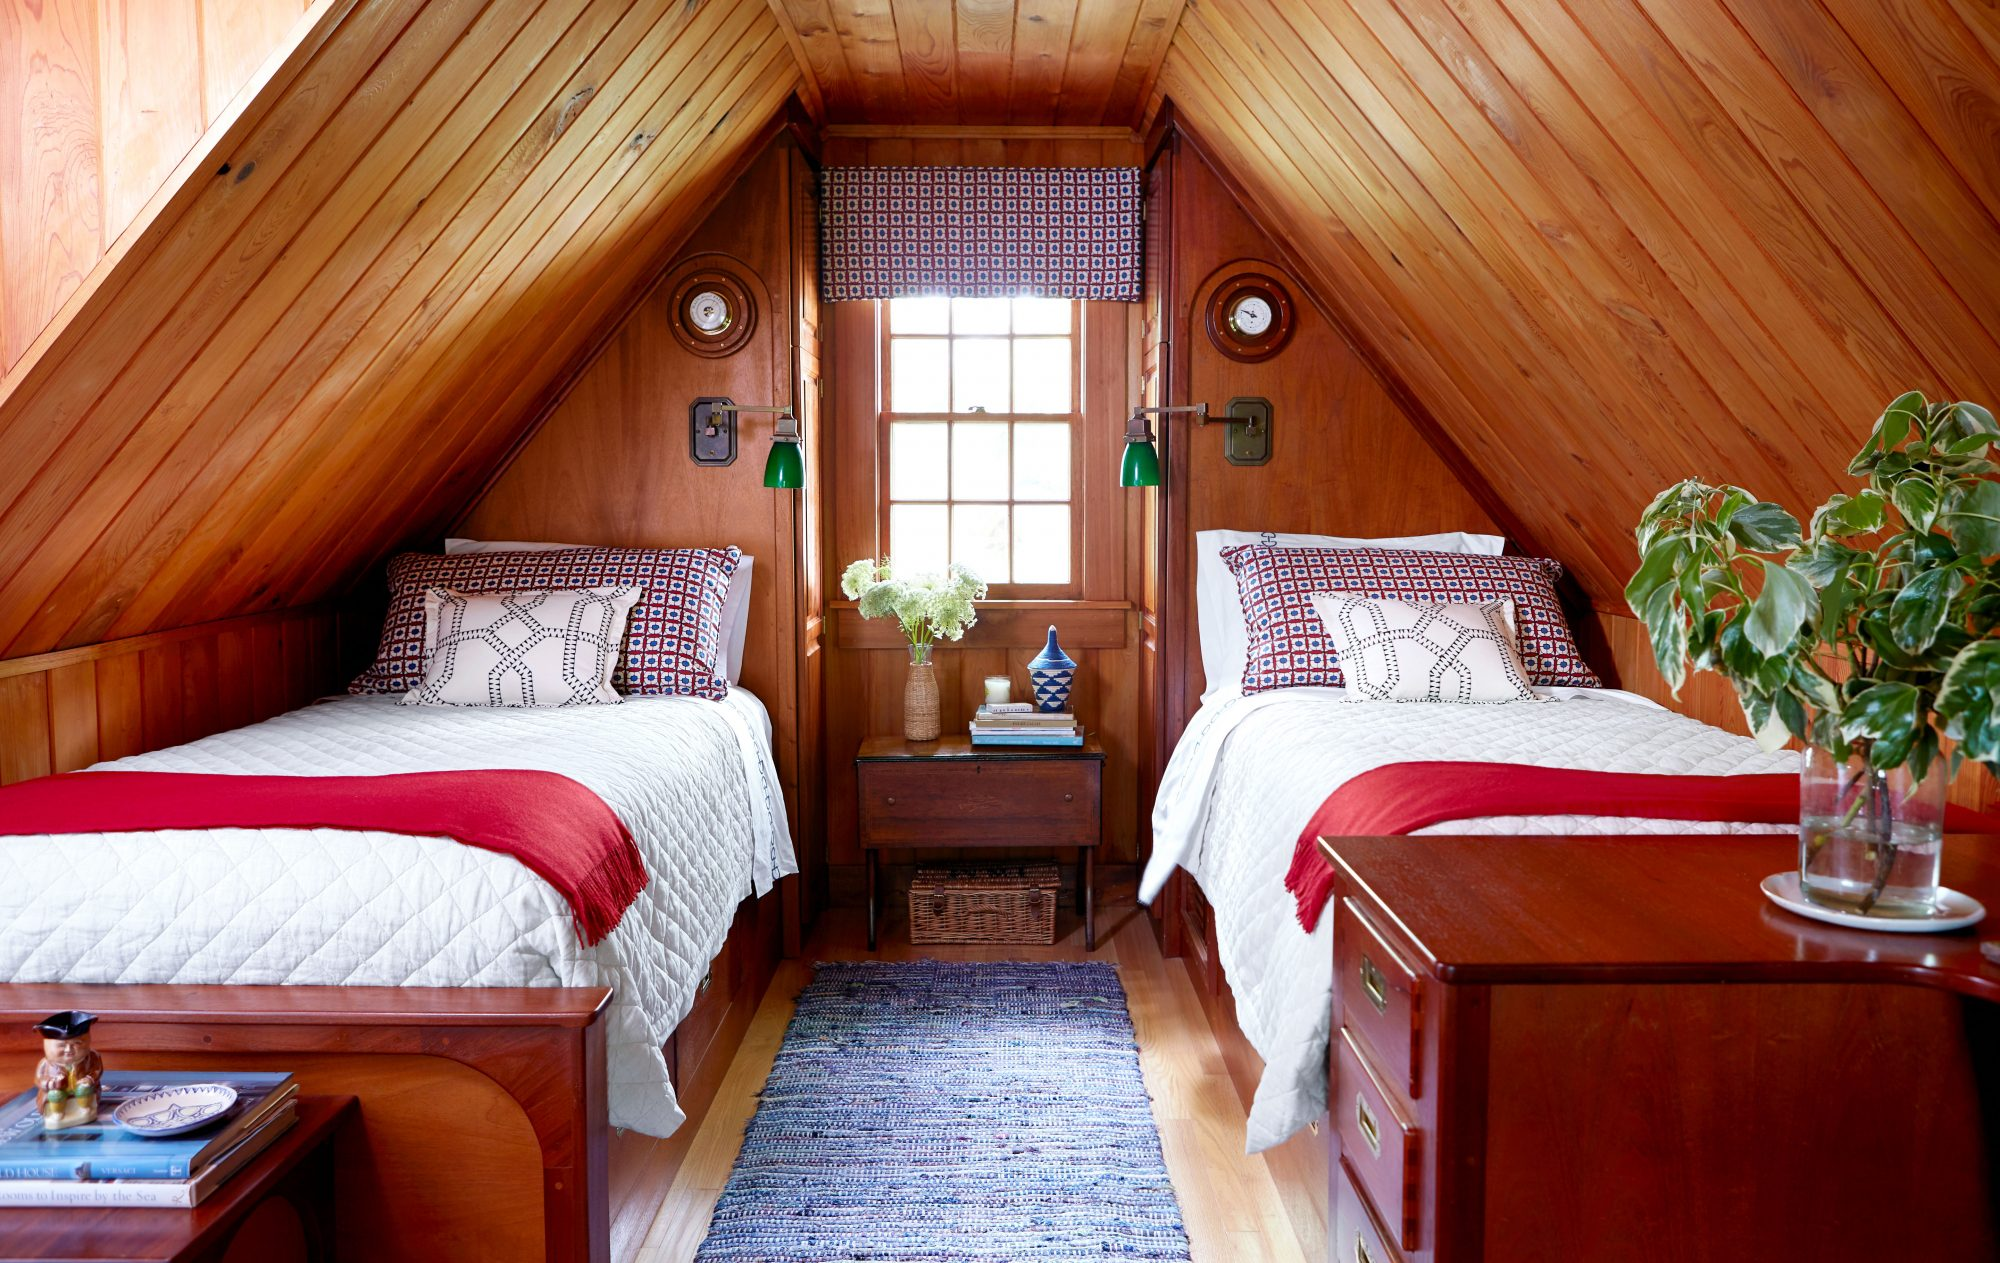 Wood-Clad Bedroom with Twin Beds and Red White and Blue Accents